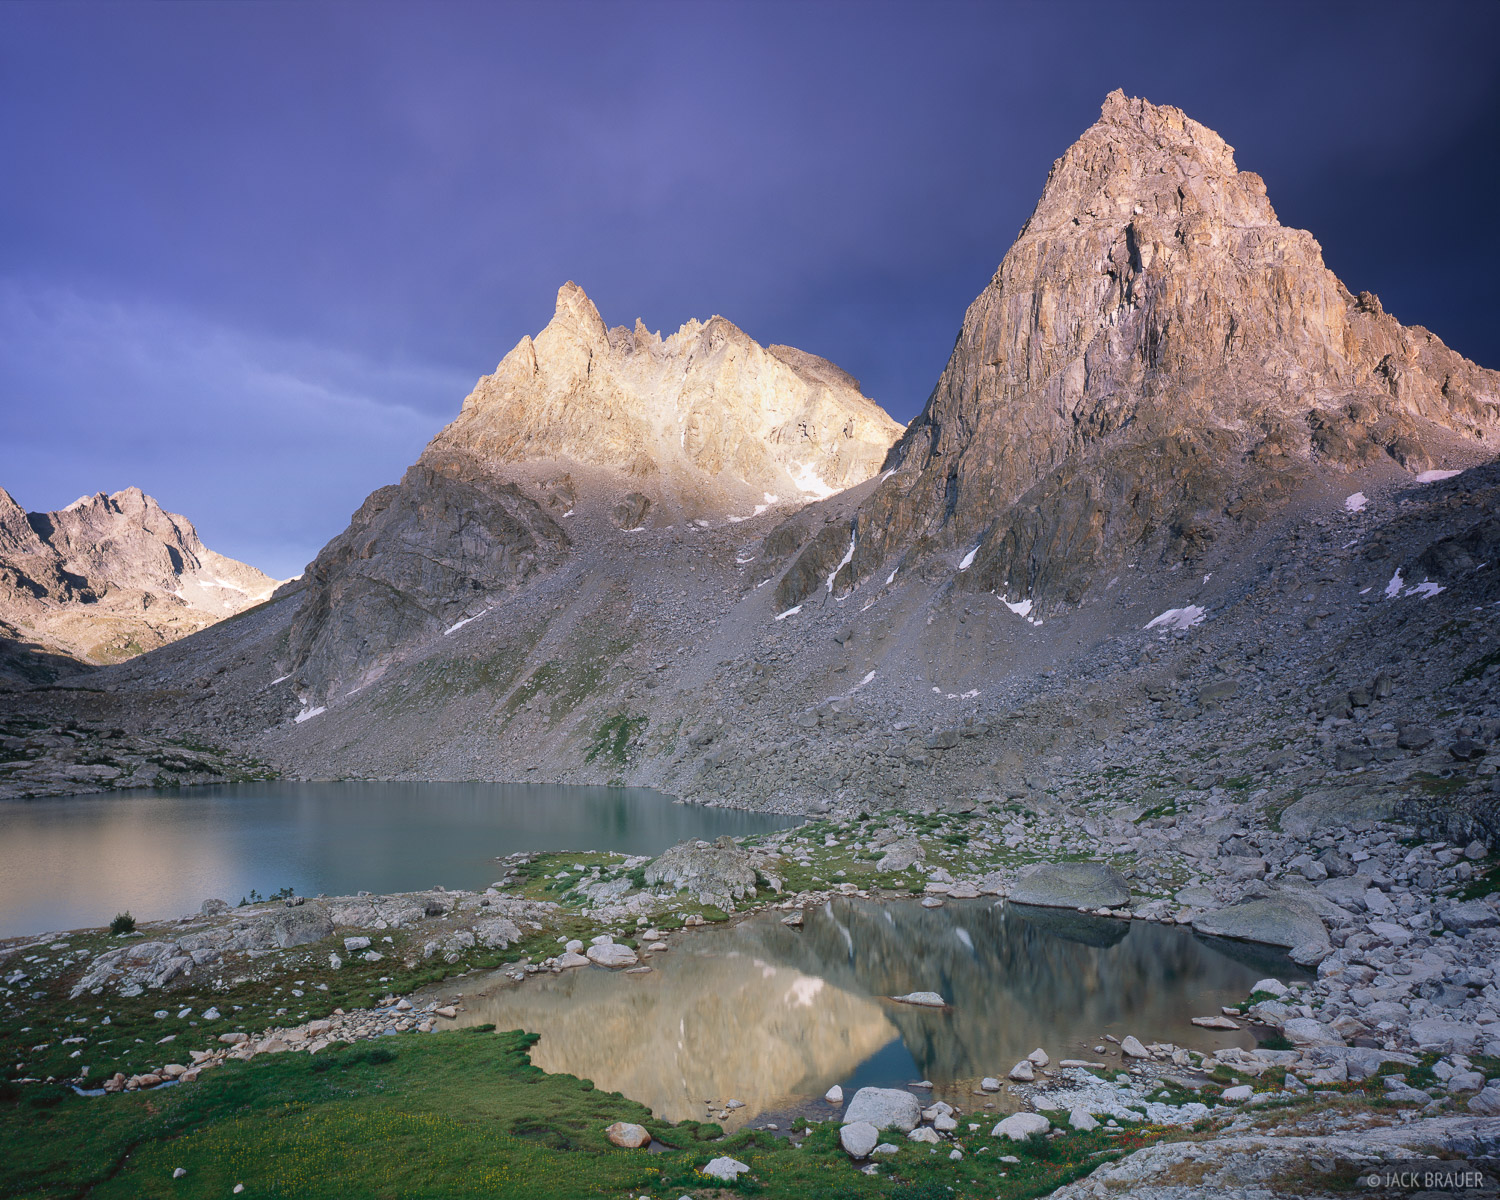 Sulphur Peak, Stroud Peak, Peak Lake, Wind River Range, Wyoming, photo